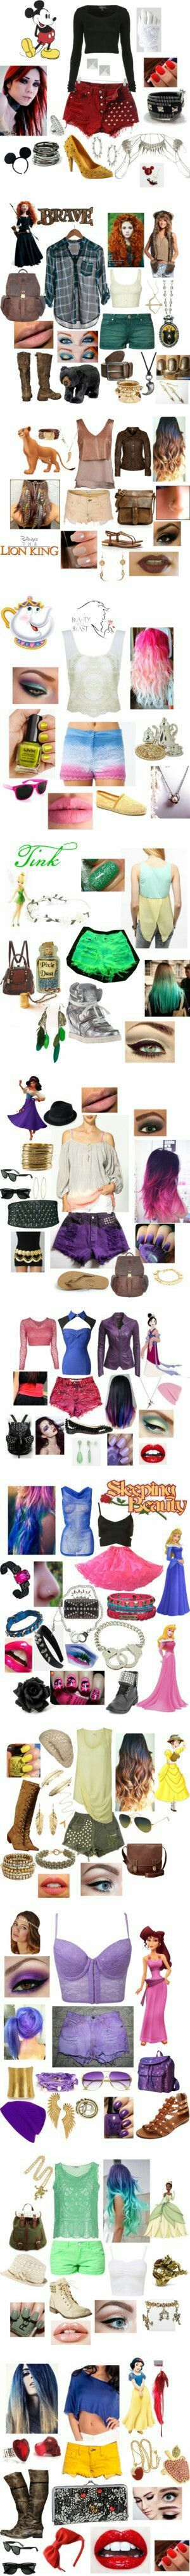 ensemble de disney